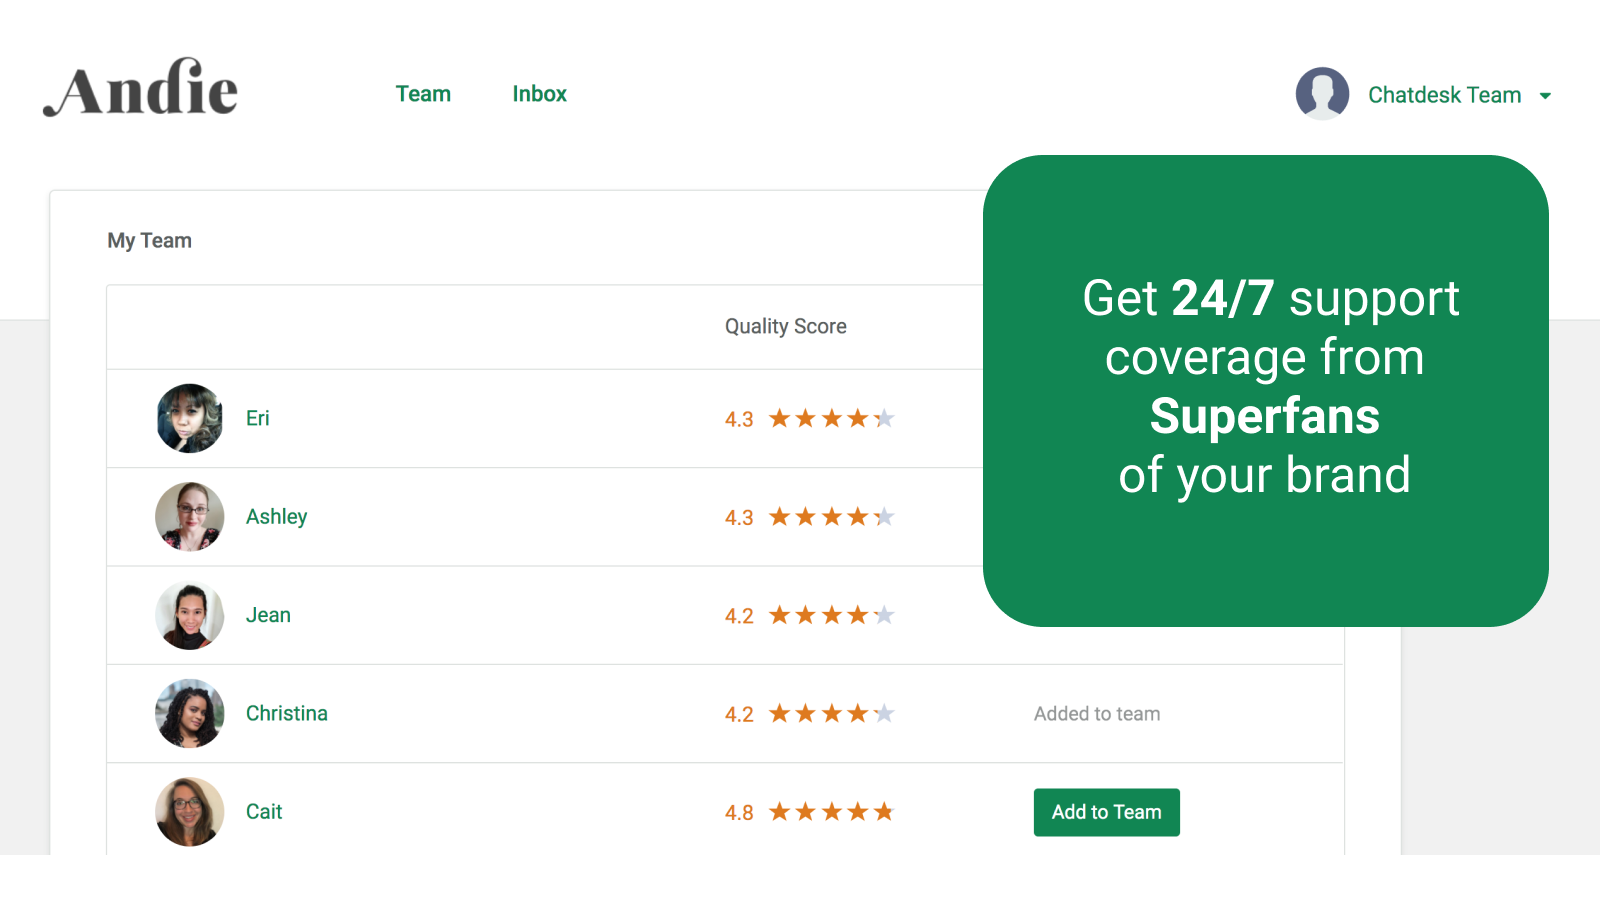 Get 24/7 support coverage from Superfans of your brand